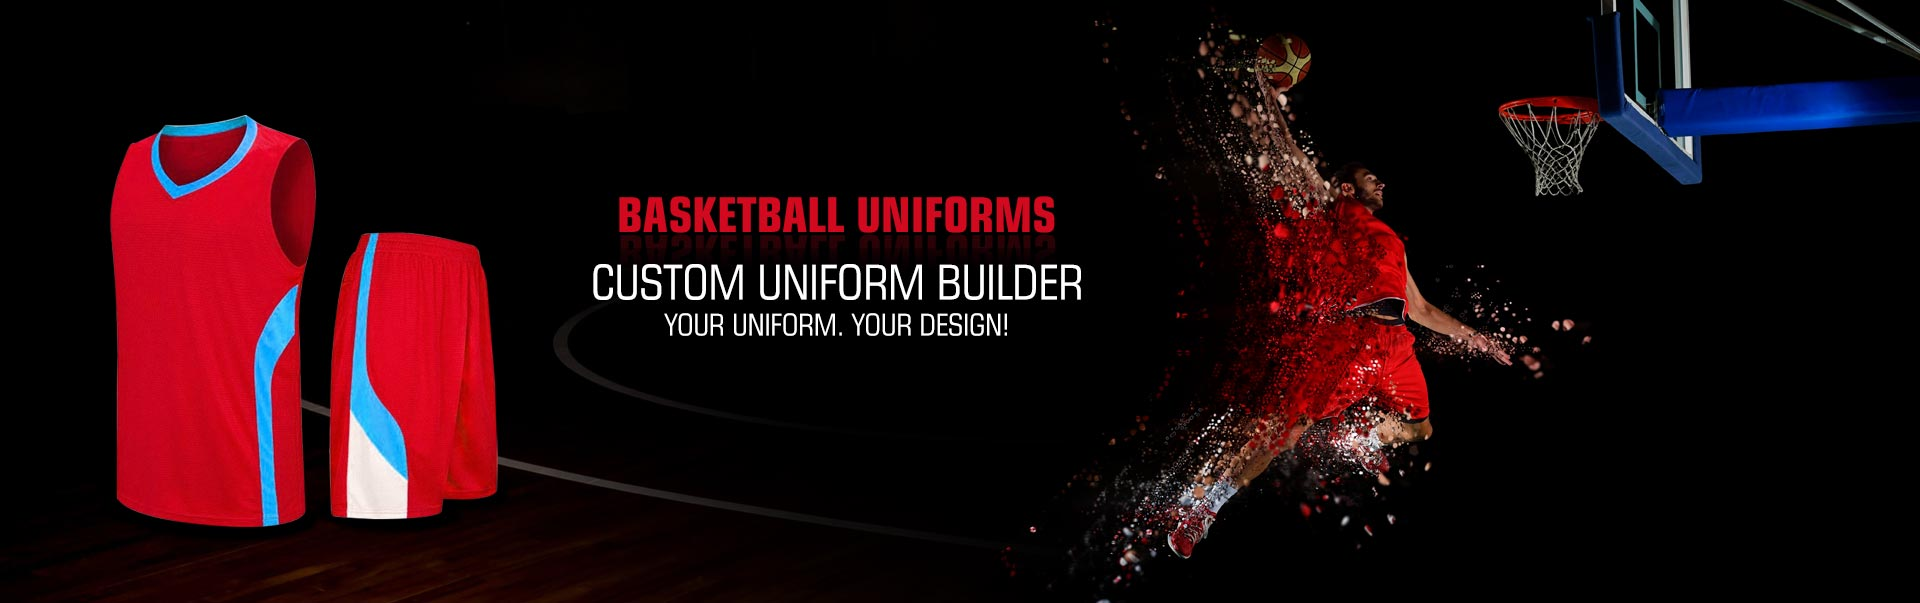 Basketball Uniforms Wholesaler, Suppliers in United Kingdom